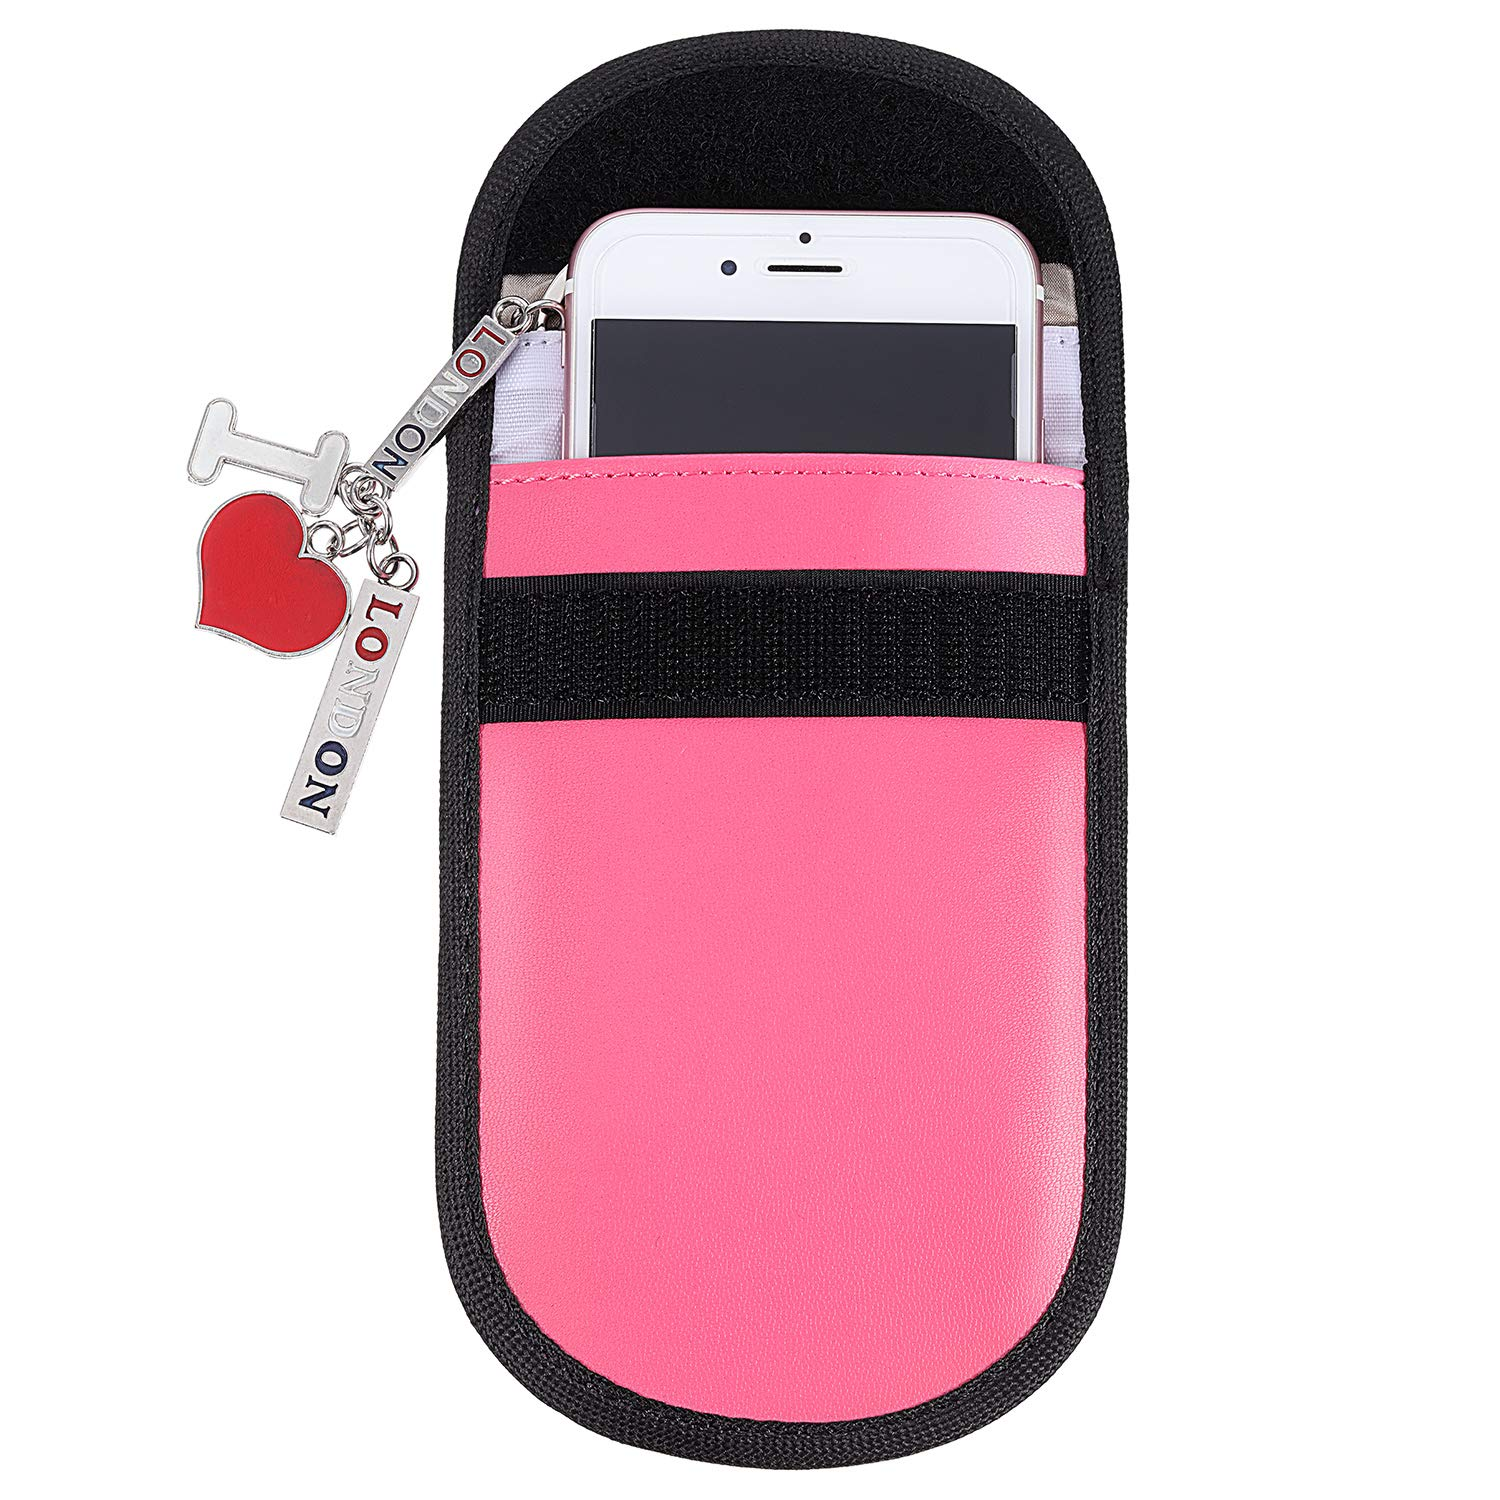 Universal Protection Tatuo 2 Pieces Car Key Signal Blocking Pouch Keyless Entry Car Key Fob Pouches Anti Theft Fob Protector Pouch Block RFI//WiFi//GSM//LTE RFID Signal Blocking